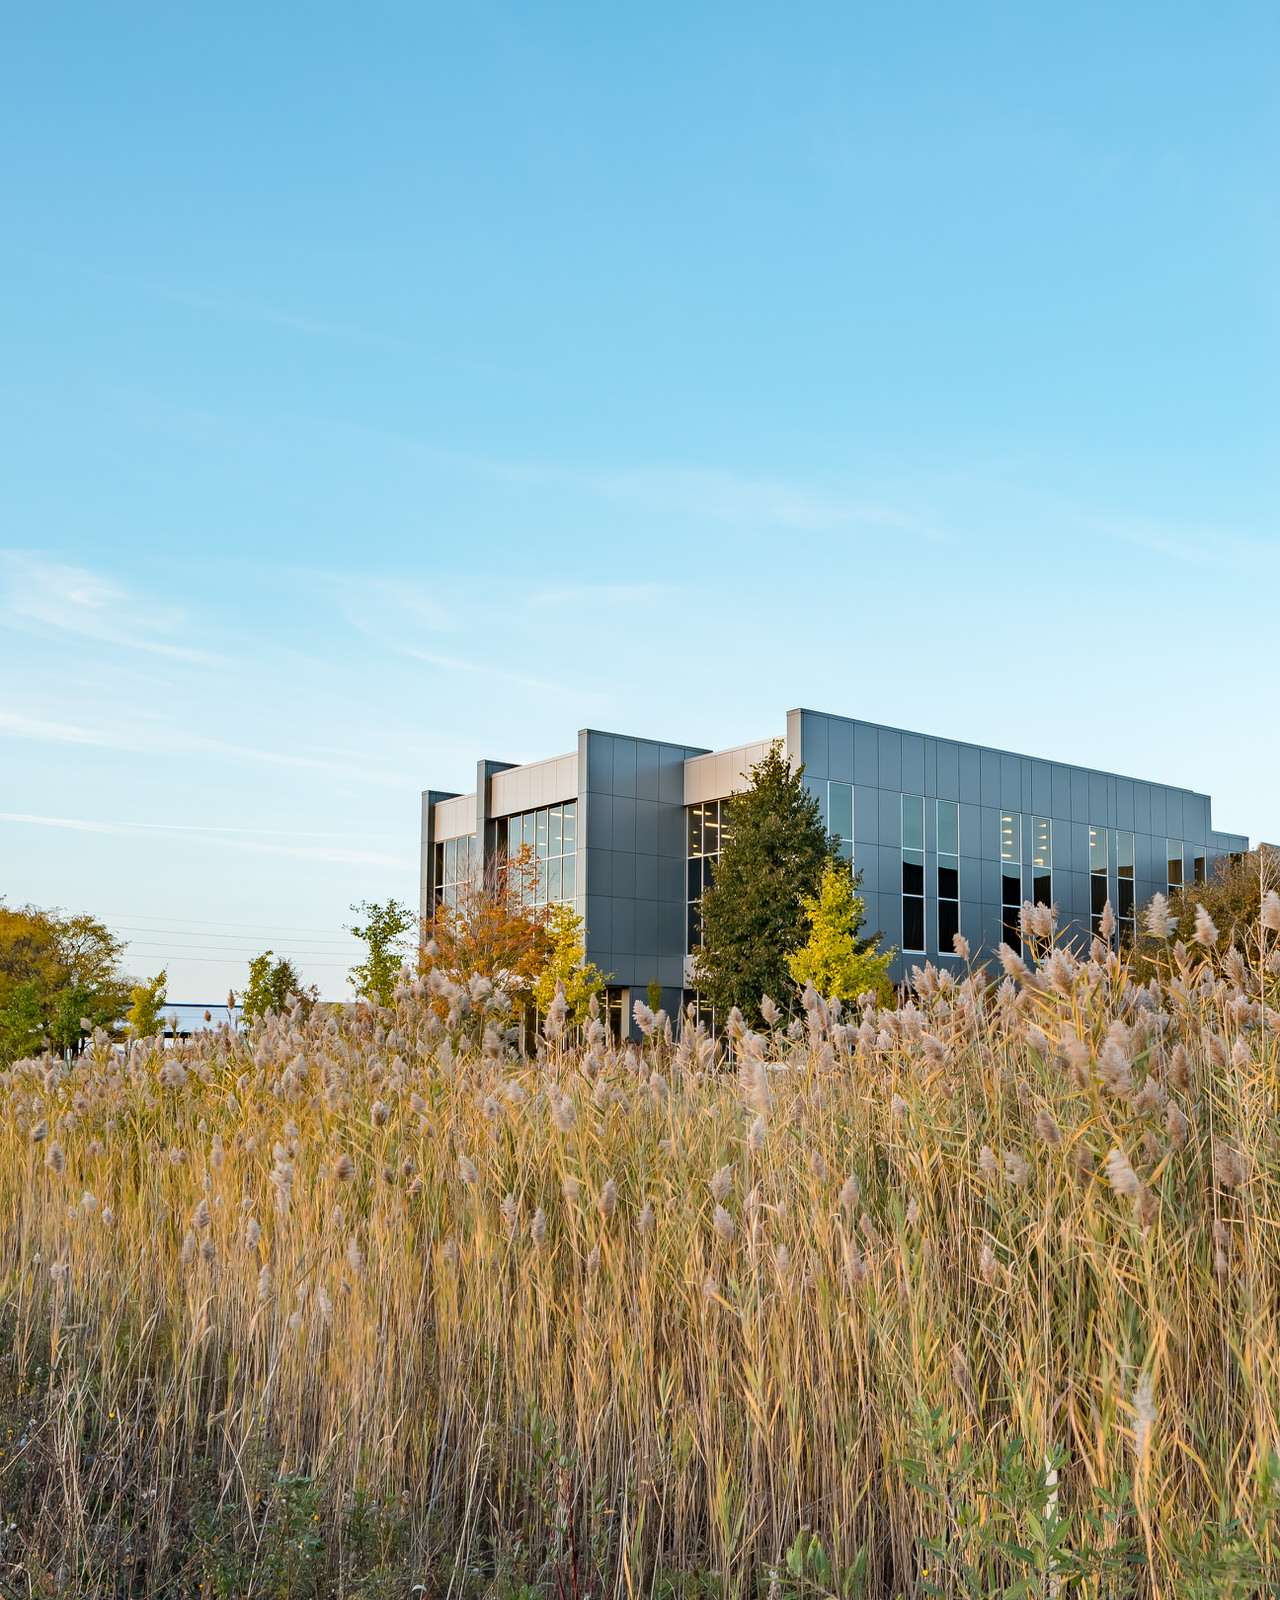 High tech building emerges from grasses in London Ontario by Scott Webb Photography